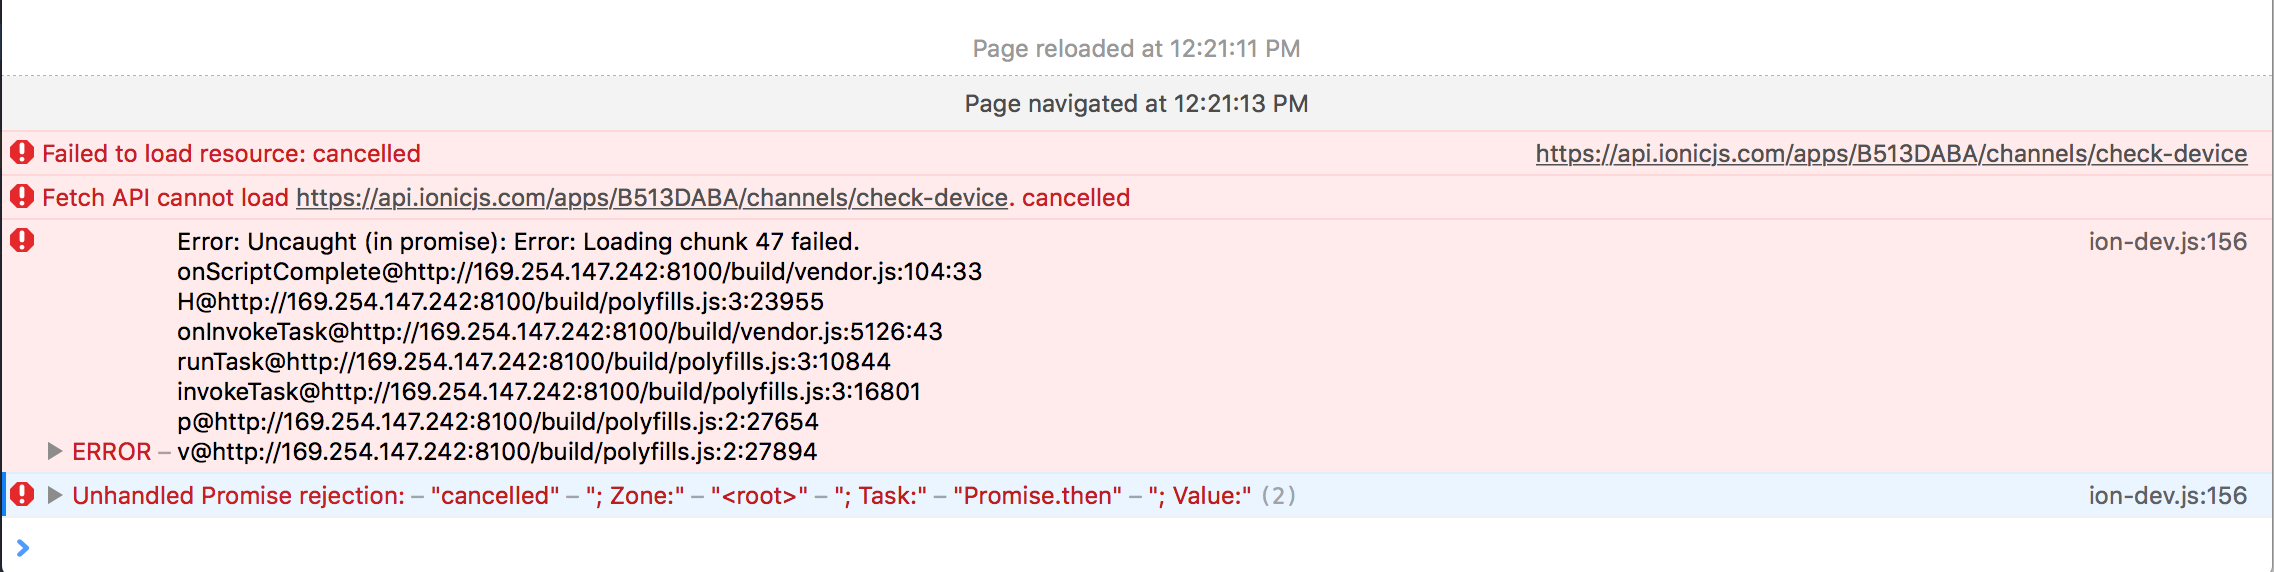 ionic deploy update is causing errors in live reload